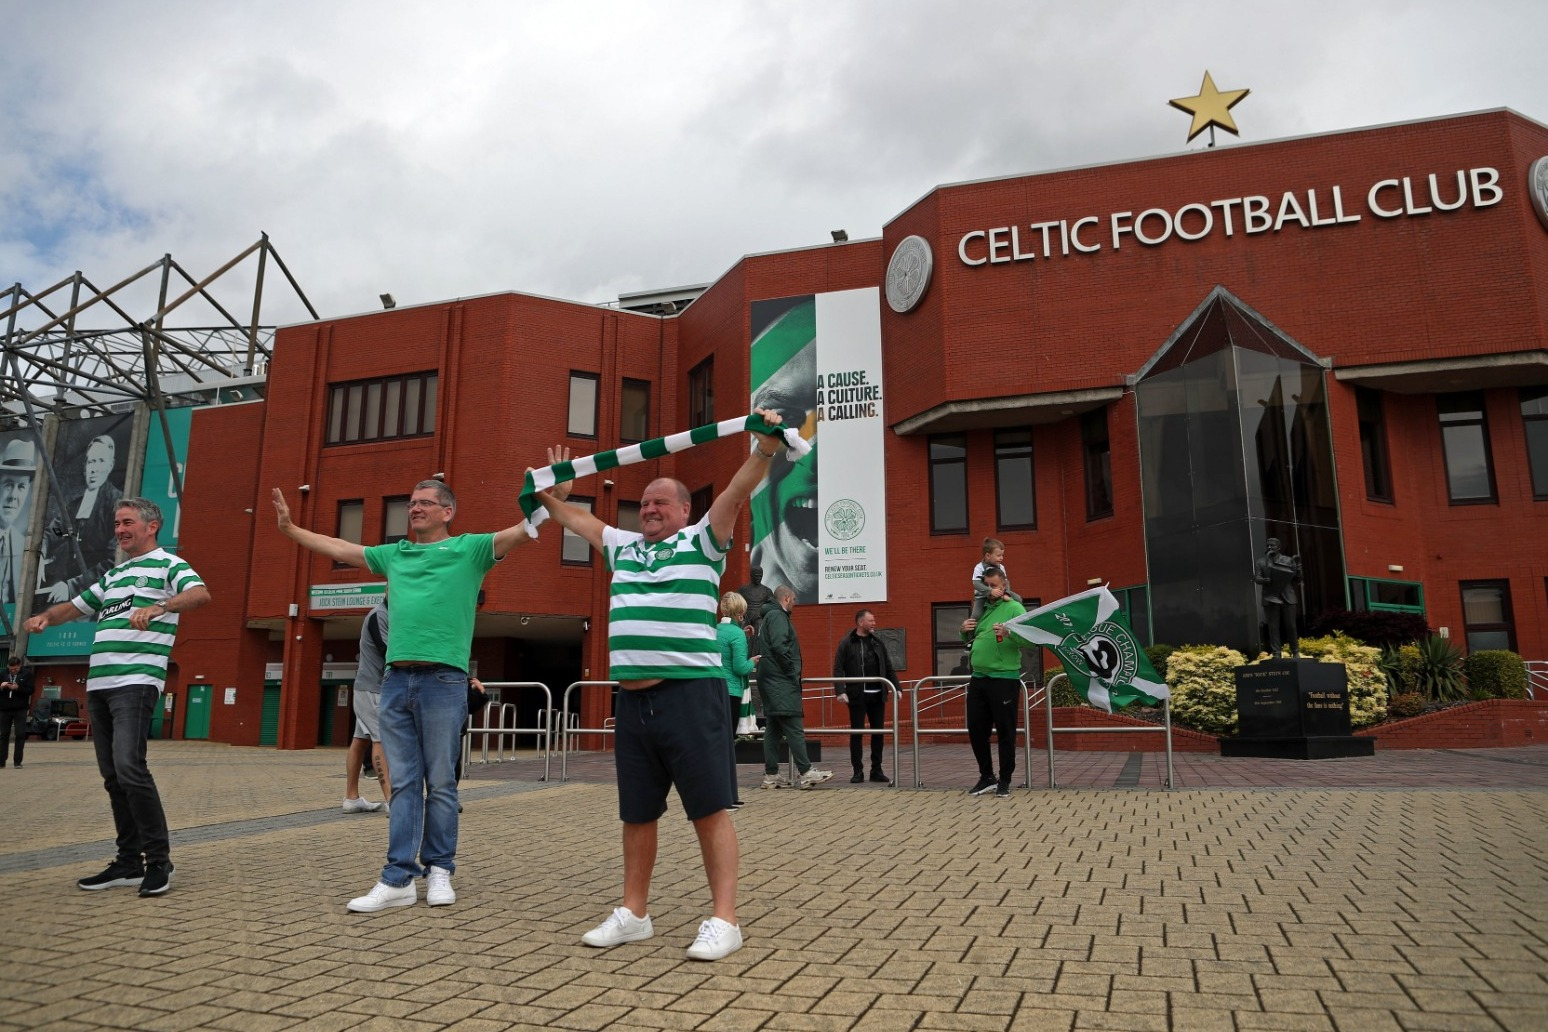 Celtic crowned Scottish Premiership champions